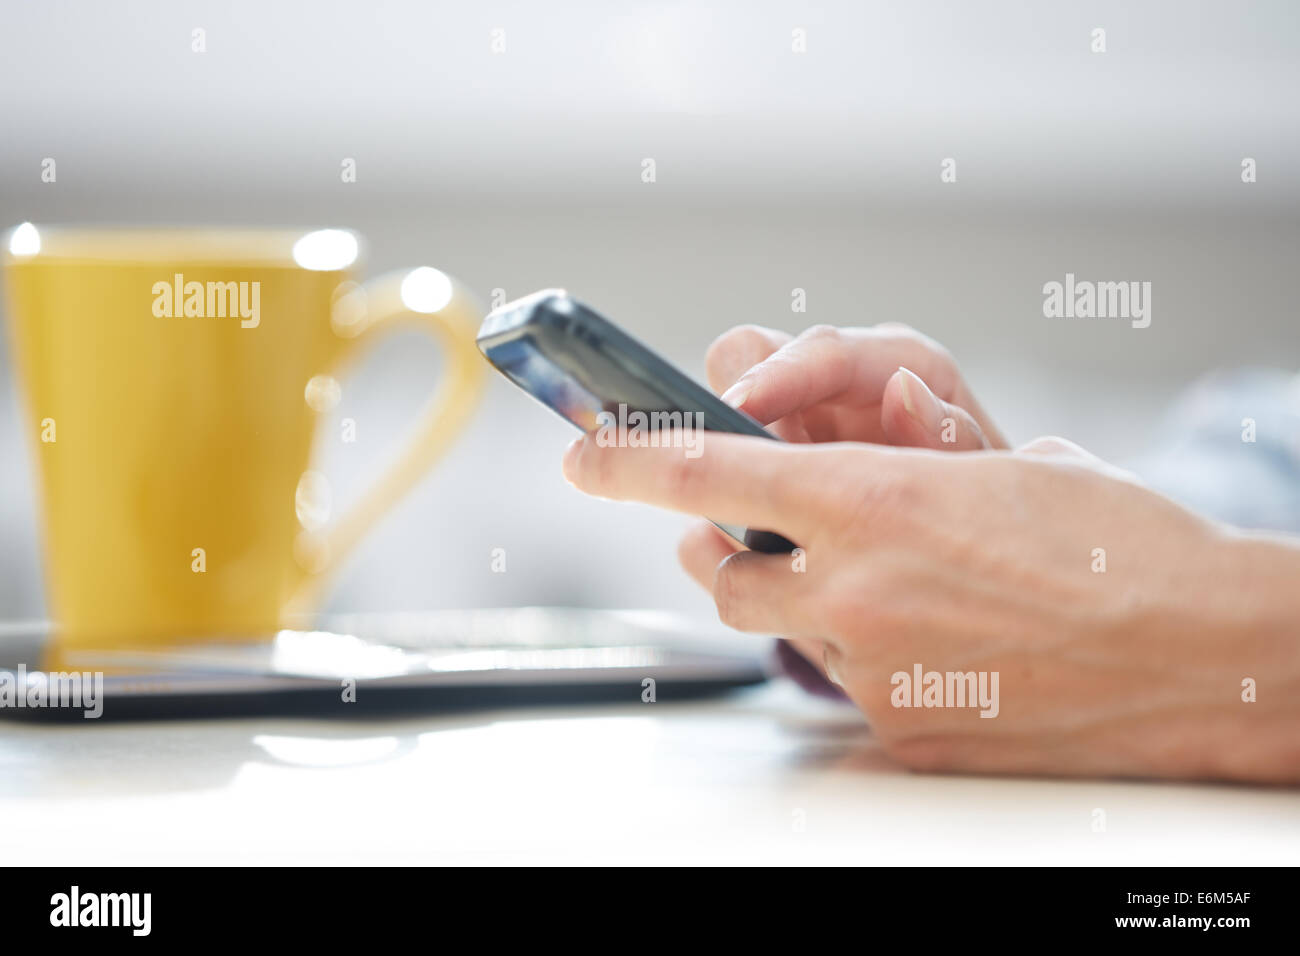 Hands of woman sending SMS via smartphone at lunch - Stock Image